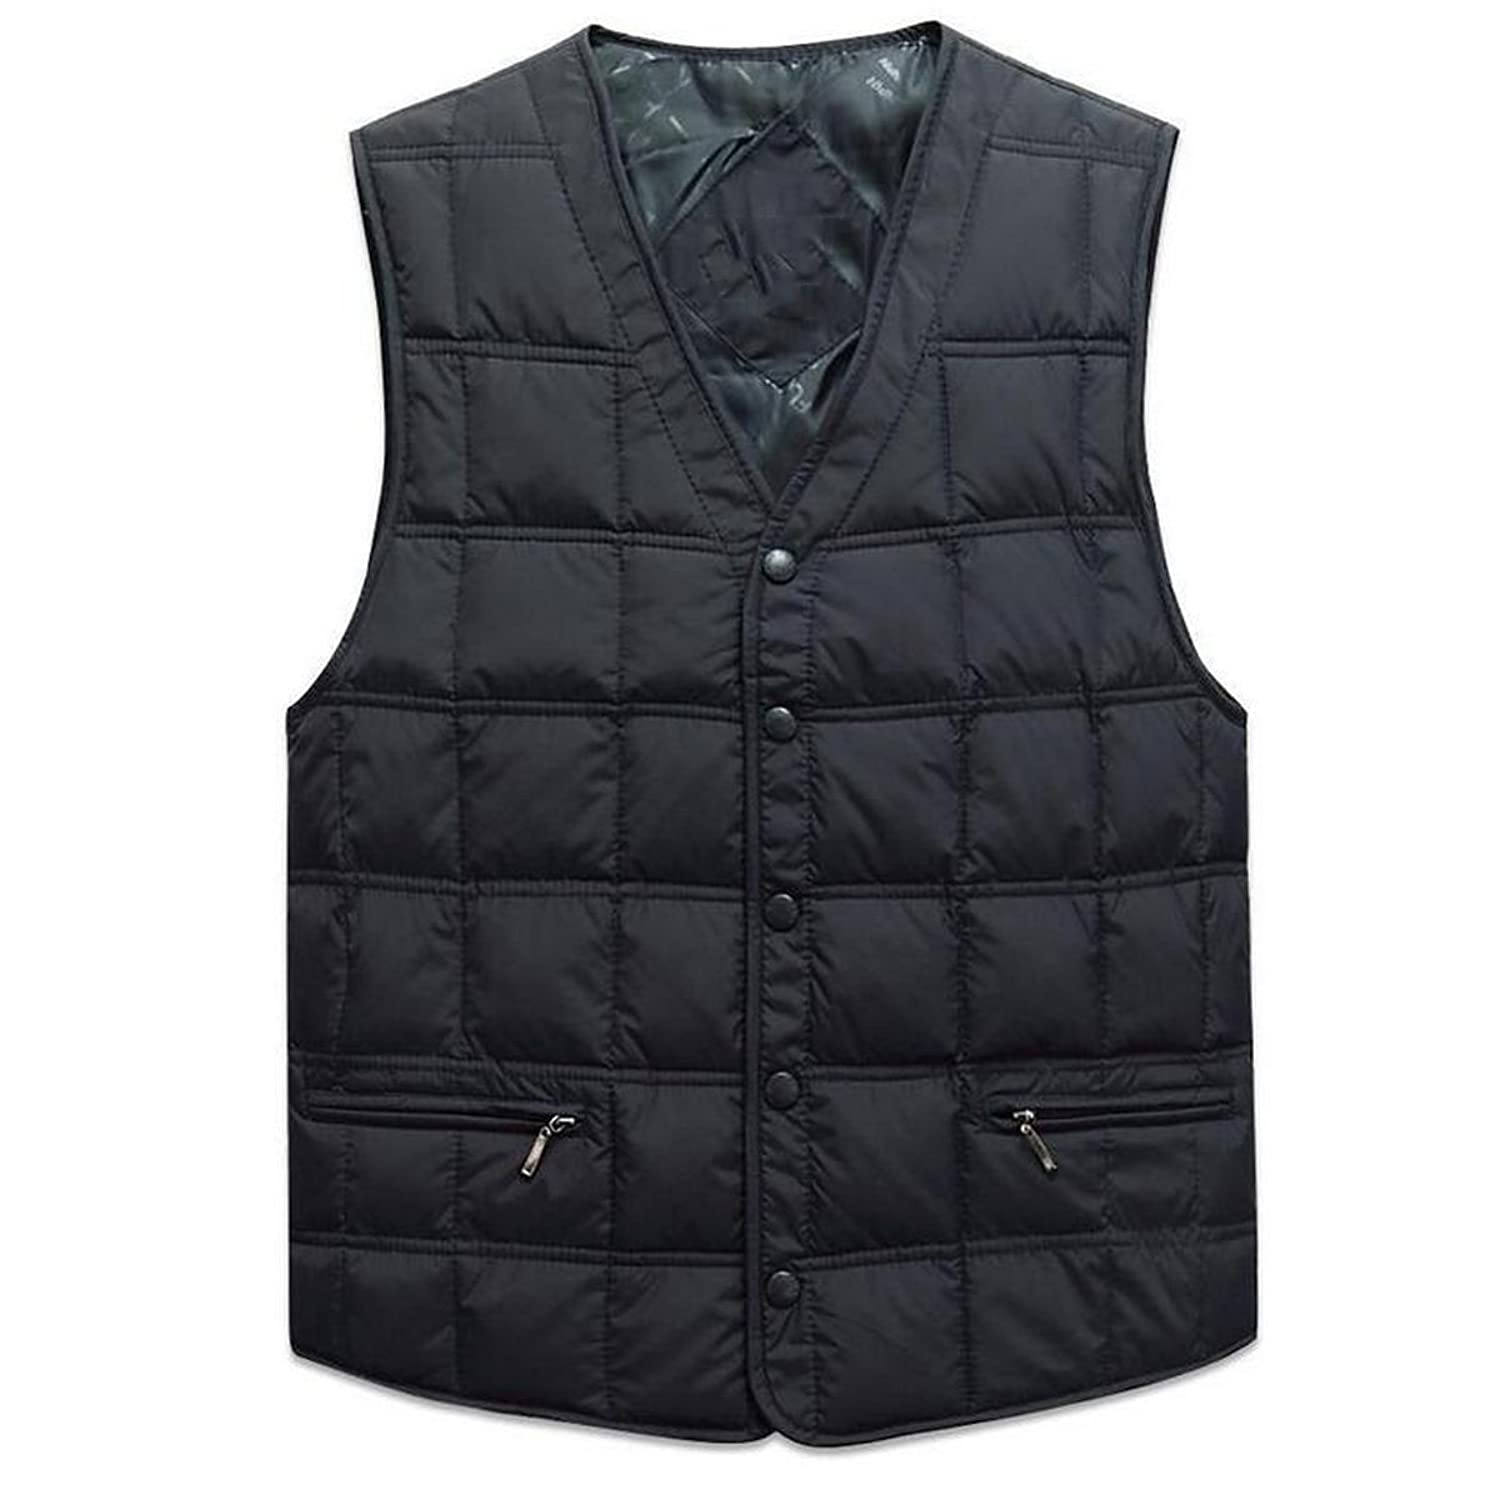 Cityelf Men's Basic Pockets Utility Thermal Duck Thick Down Puffer Vest MJM0005